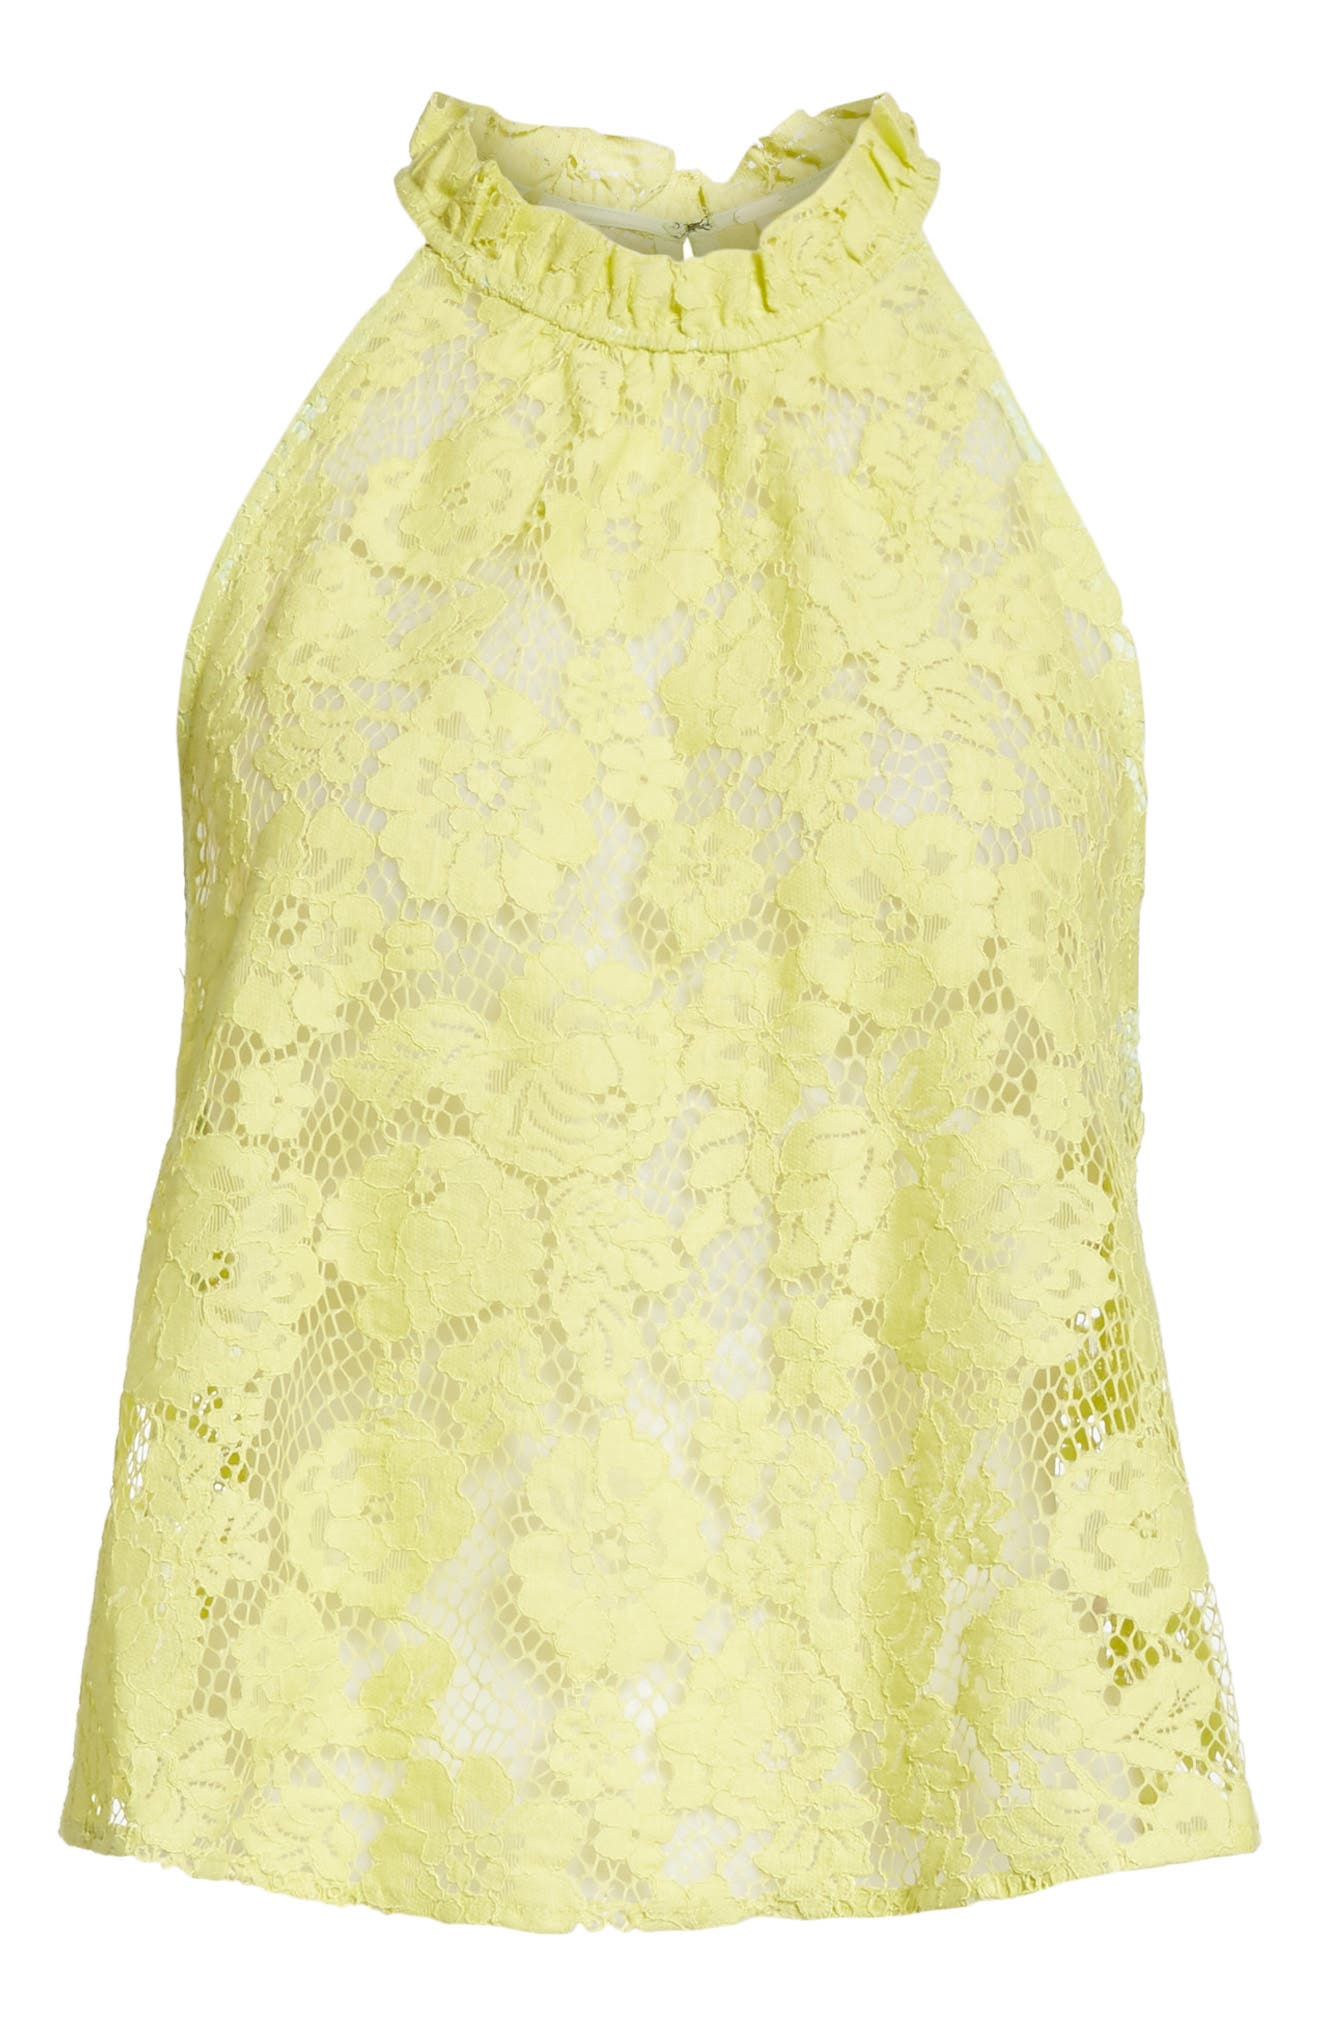 Sweet Meadow Dreams Lace Top,                             Alternate thumbnail 6, color,                             Chartreuse